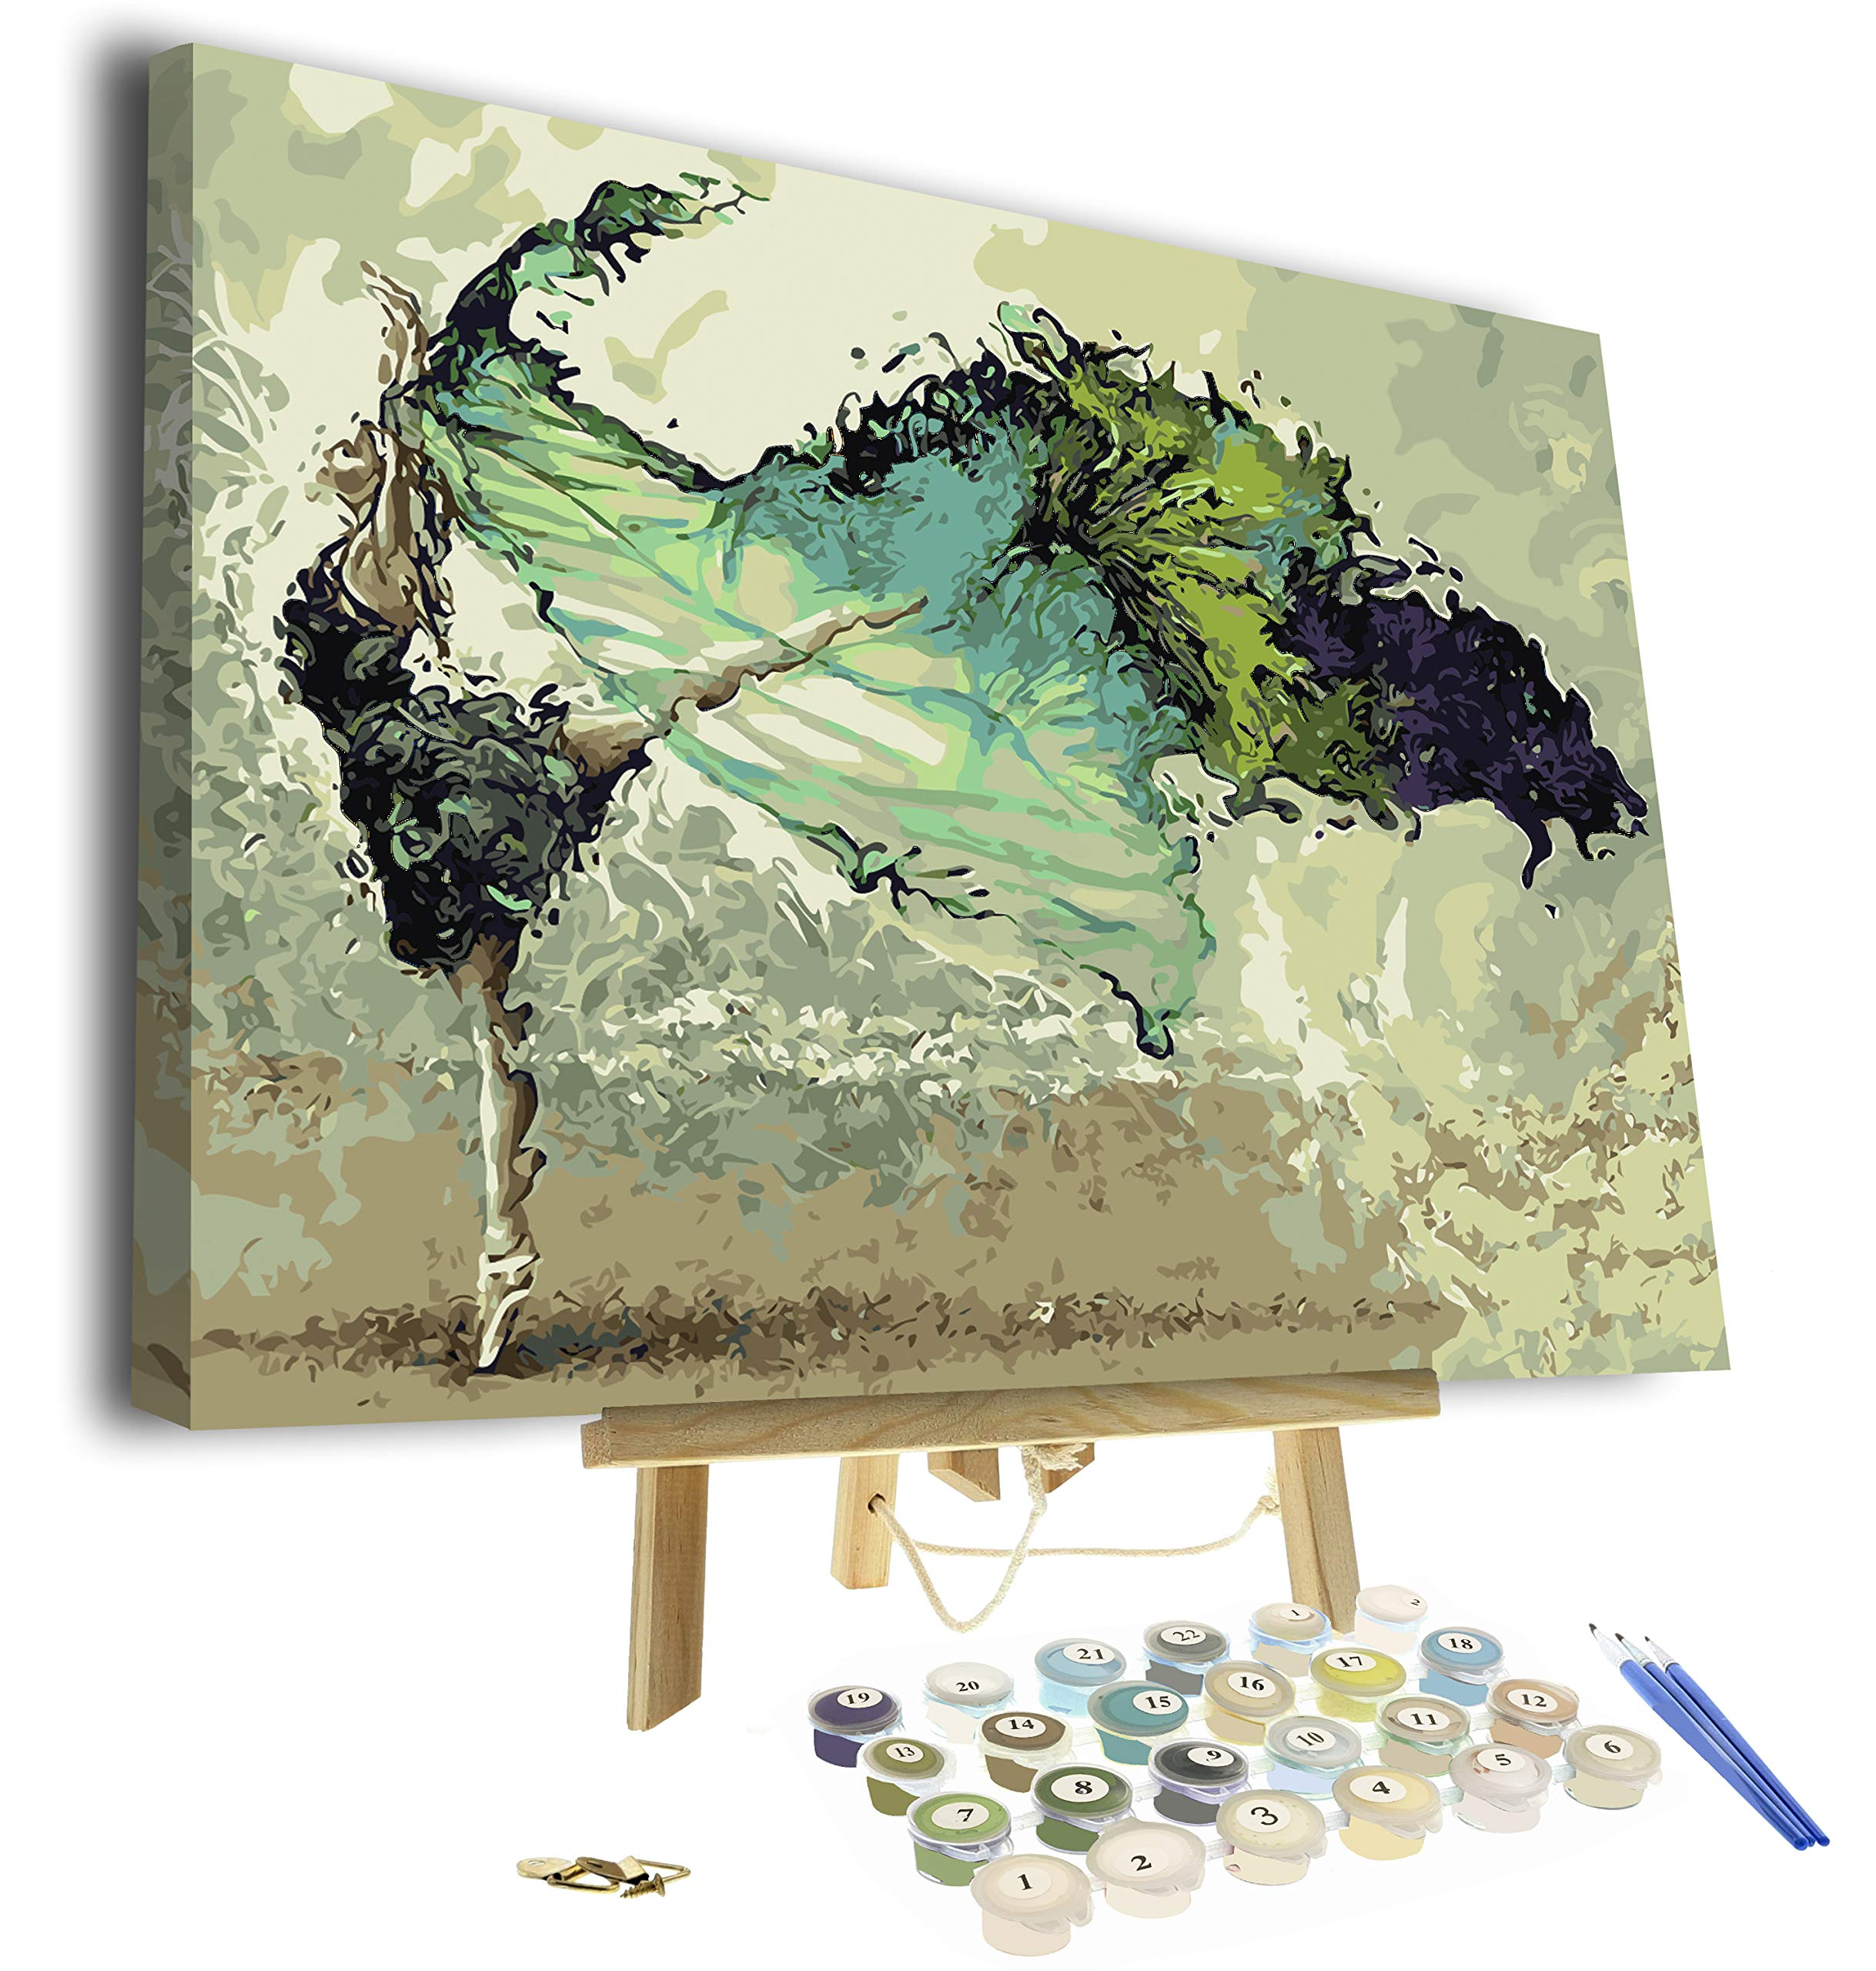 Paint by Numbers for Adults - Framed Canvas and Wooden Easel Stand - DIY Full Set of Assorted Color Oil Painting Kit and Brush Accessories - Soul Dancer 12''x16'' Replica (Soul Dancer) by Pixel Splash